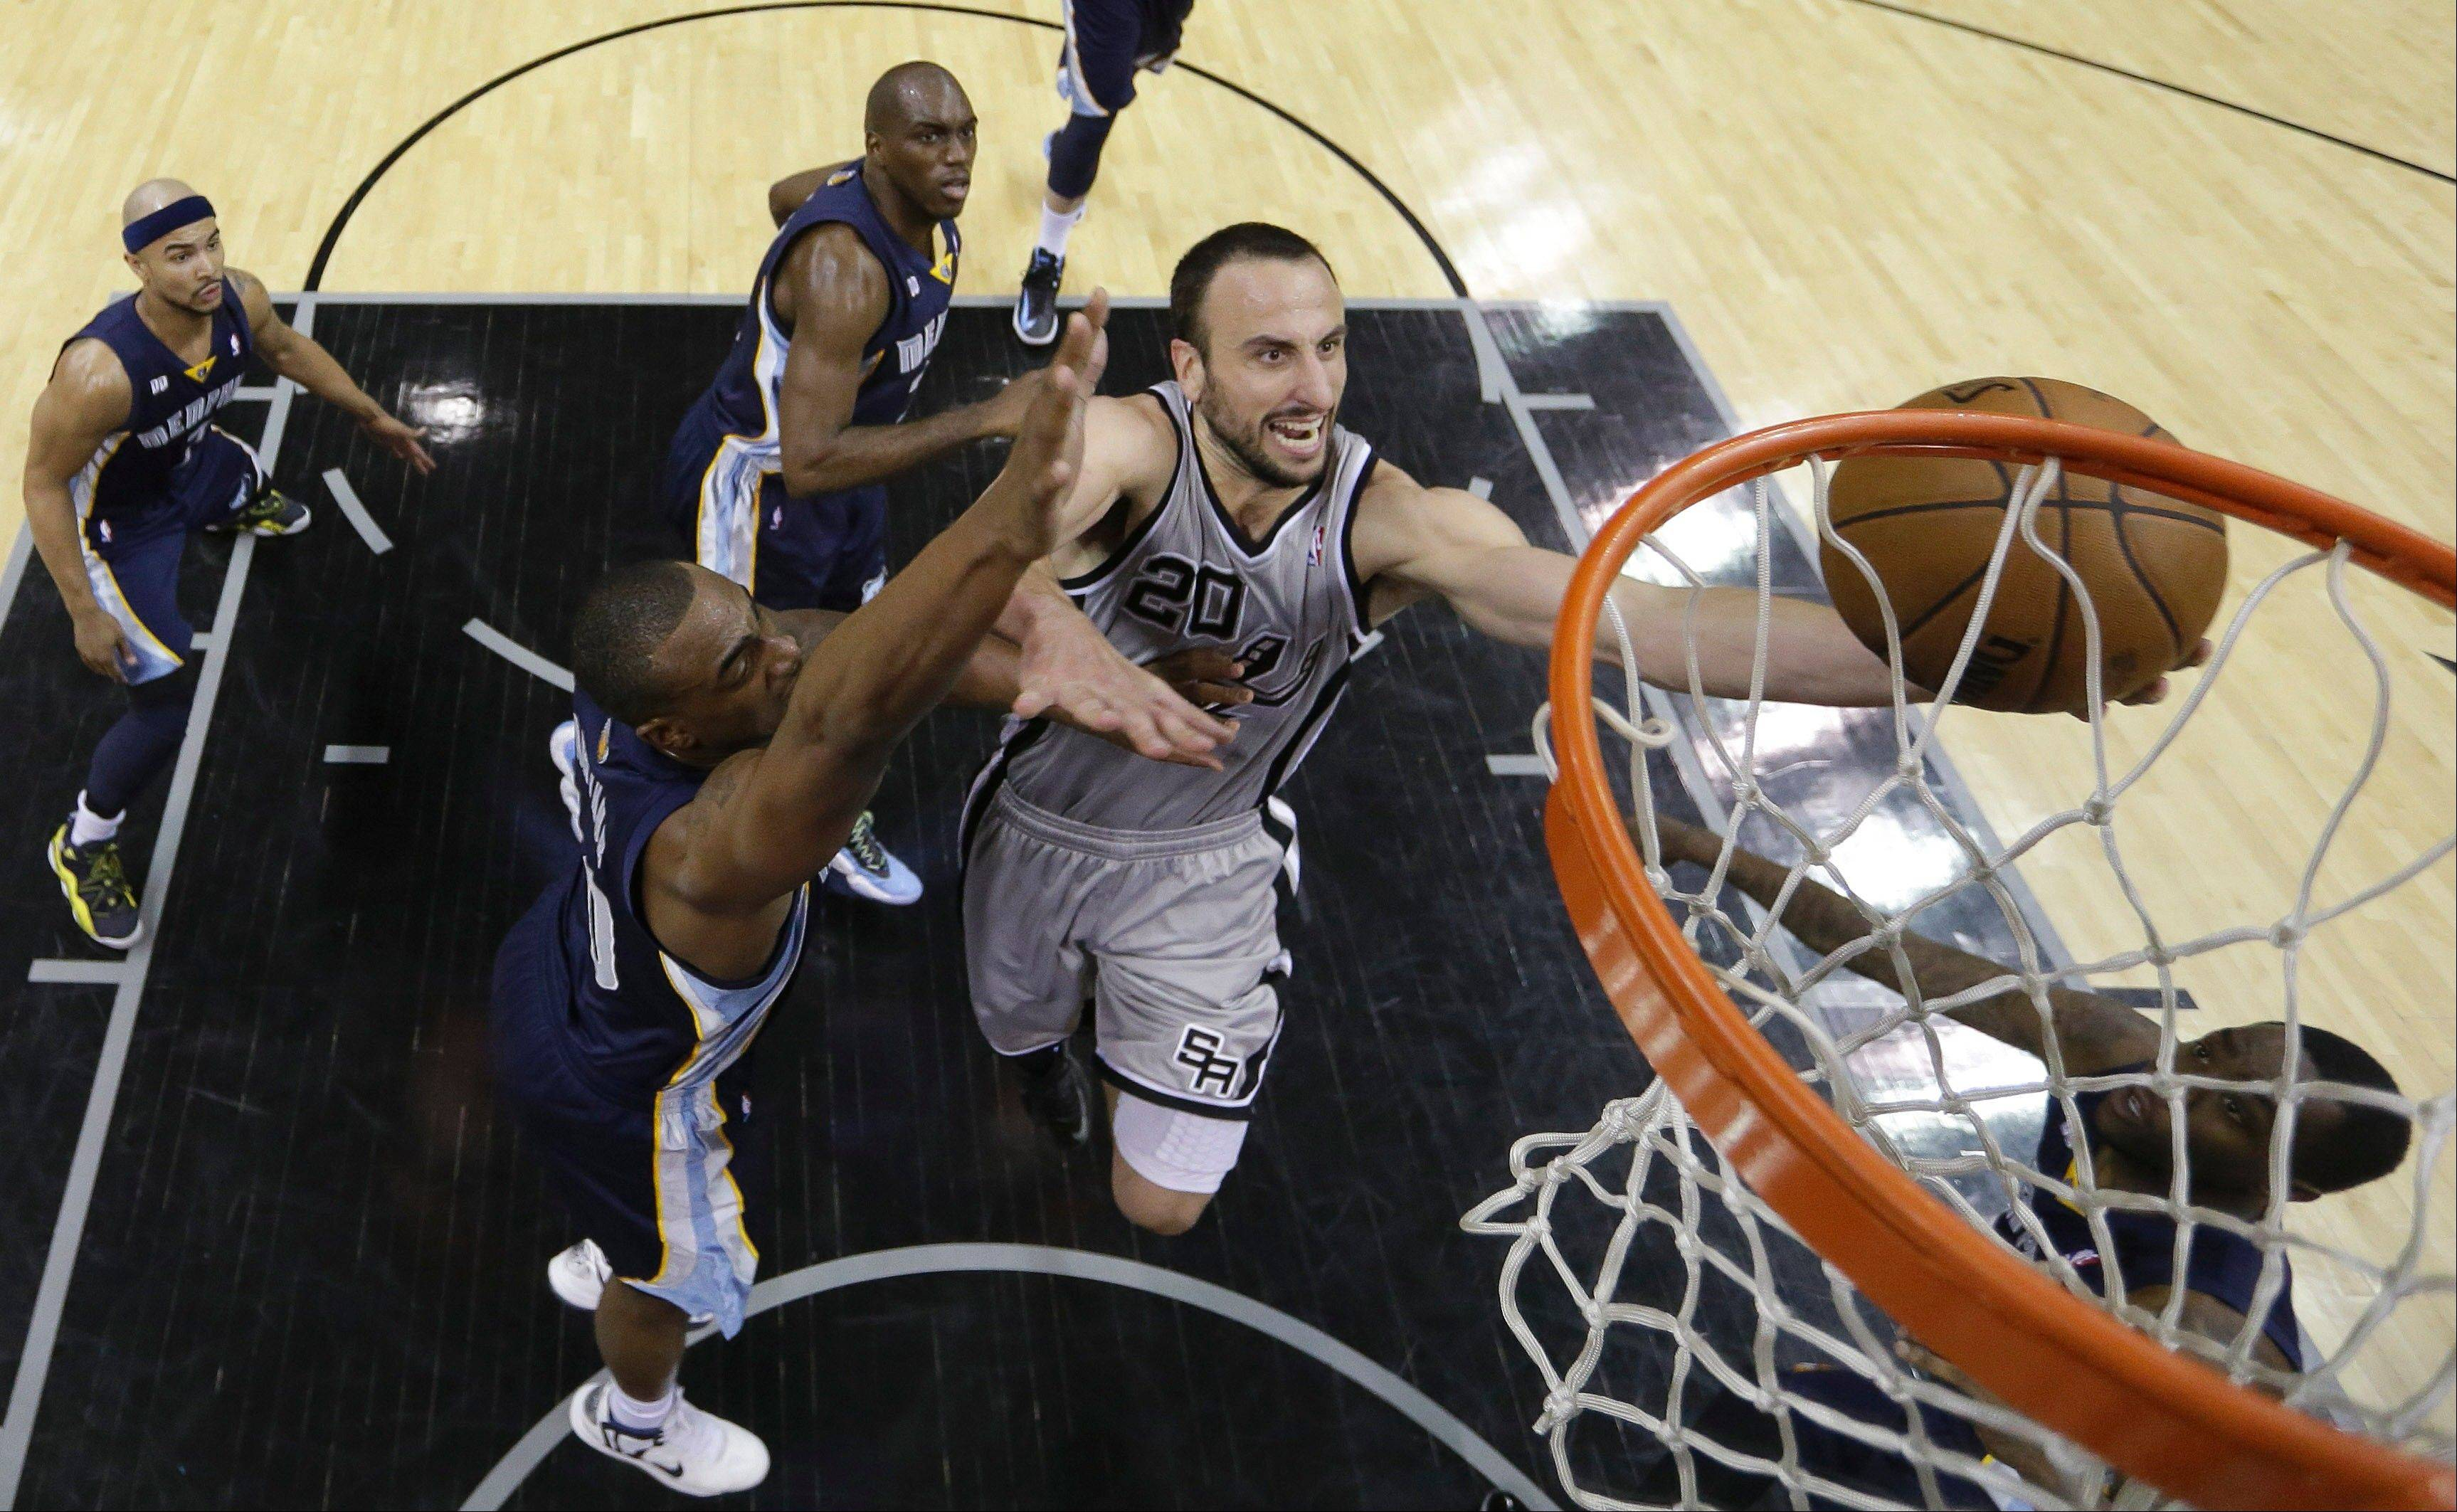 San Antonio Spurs' Manu Ginobili (20), of Argentina, drives to the basket as Memphis Grizzlies' Darrell Arthur, left, defends him during the second half in Ga